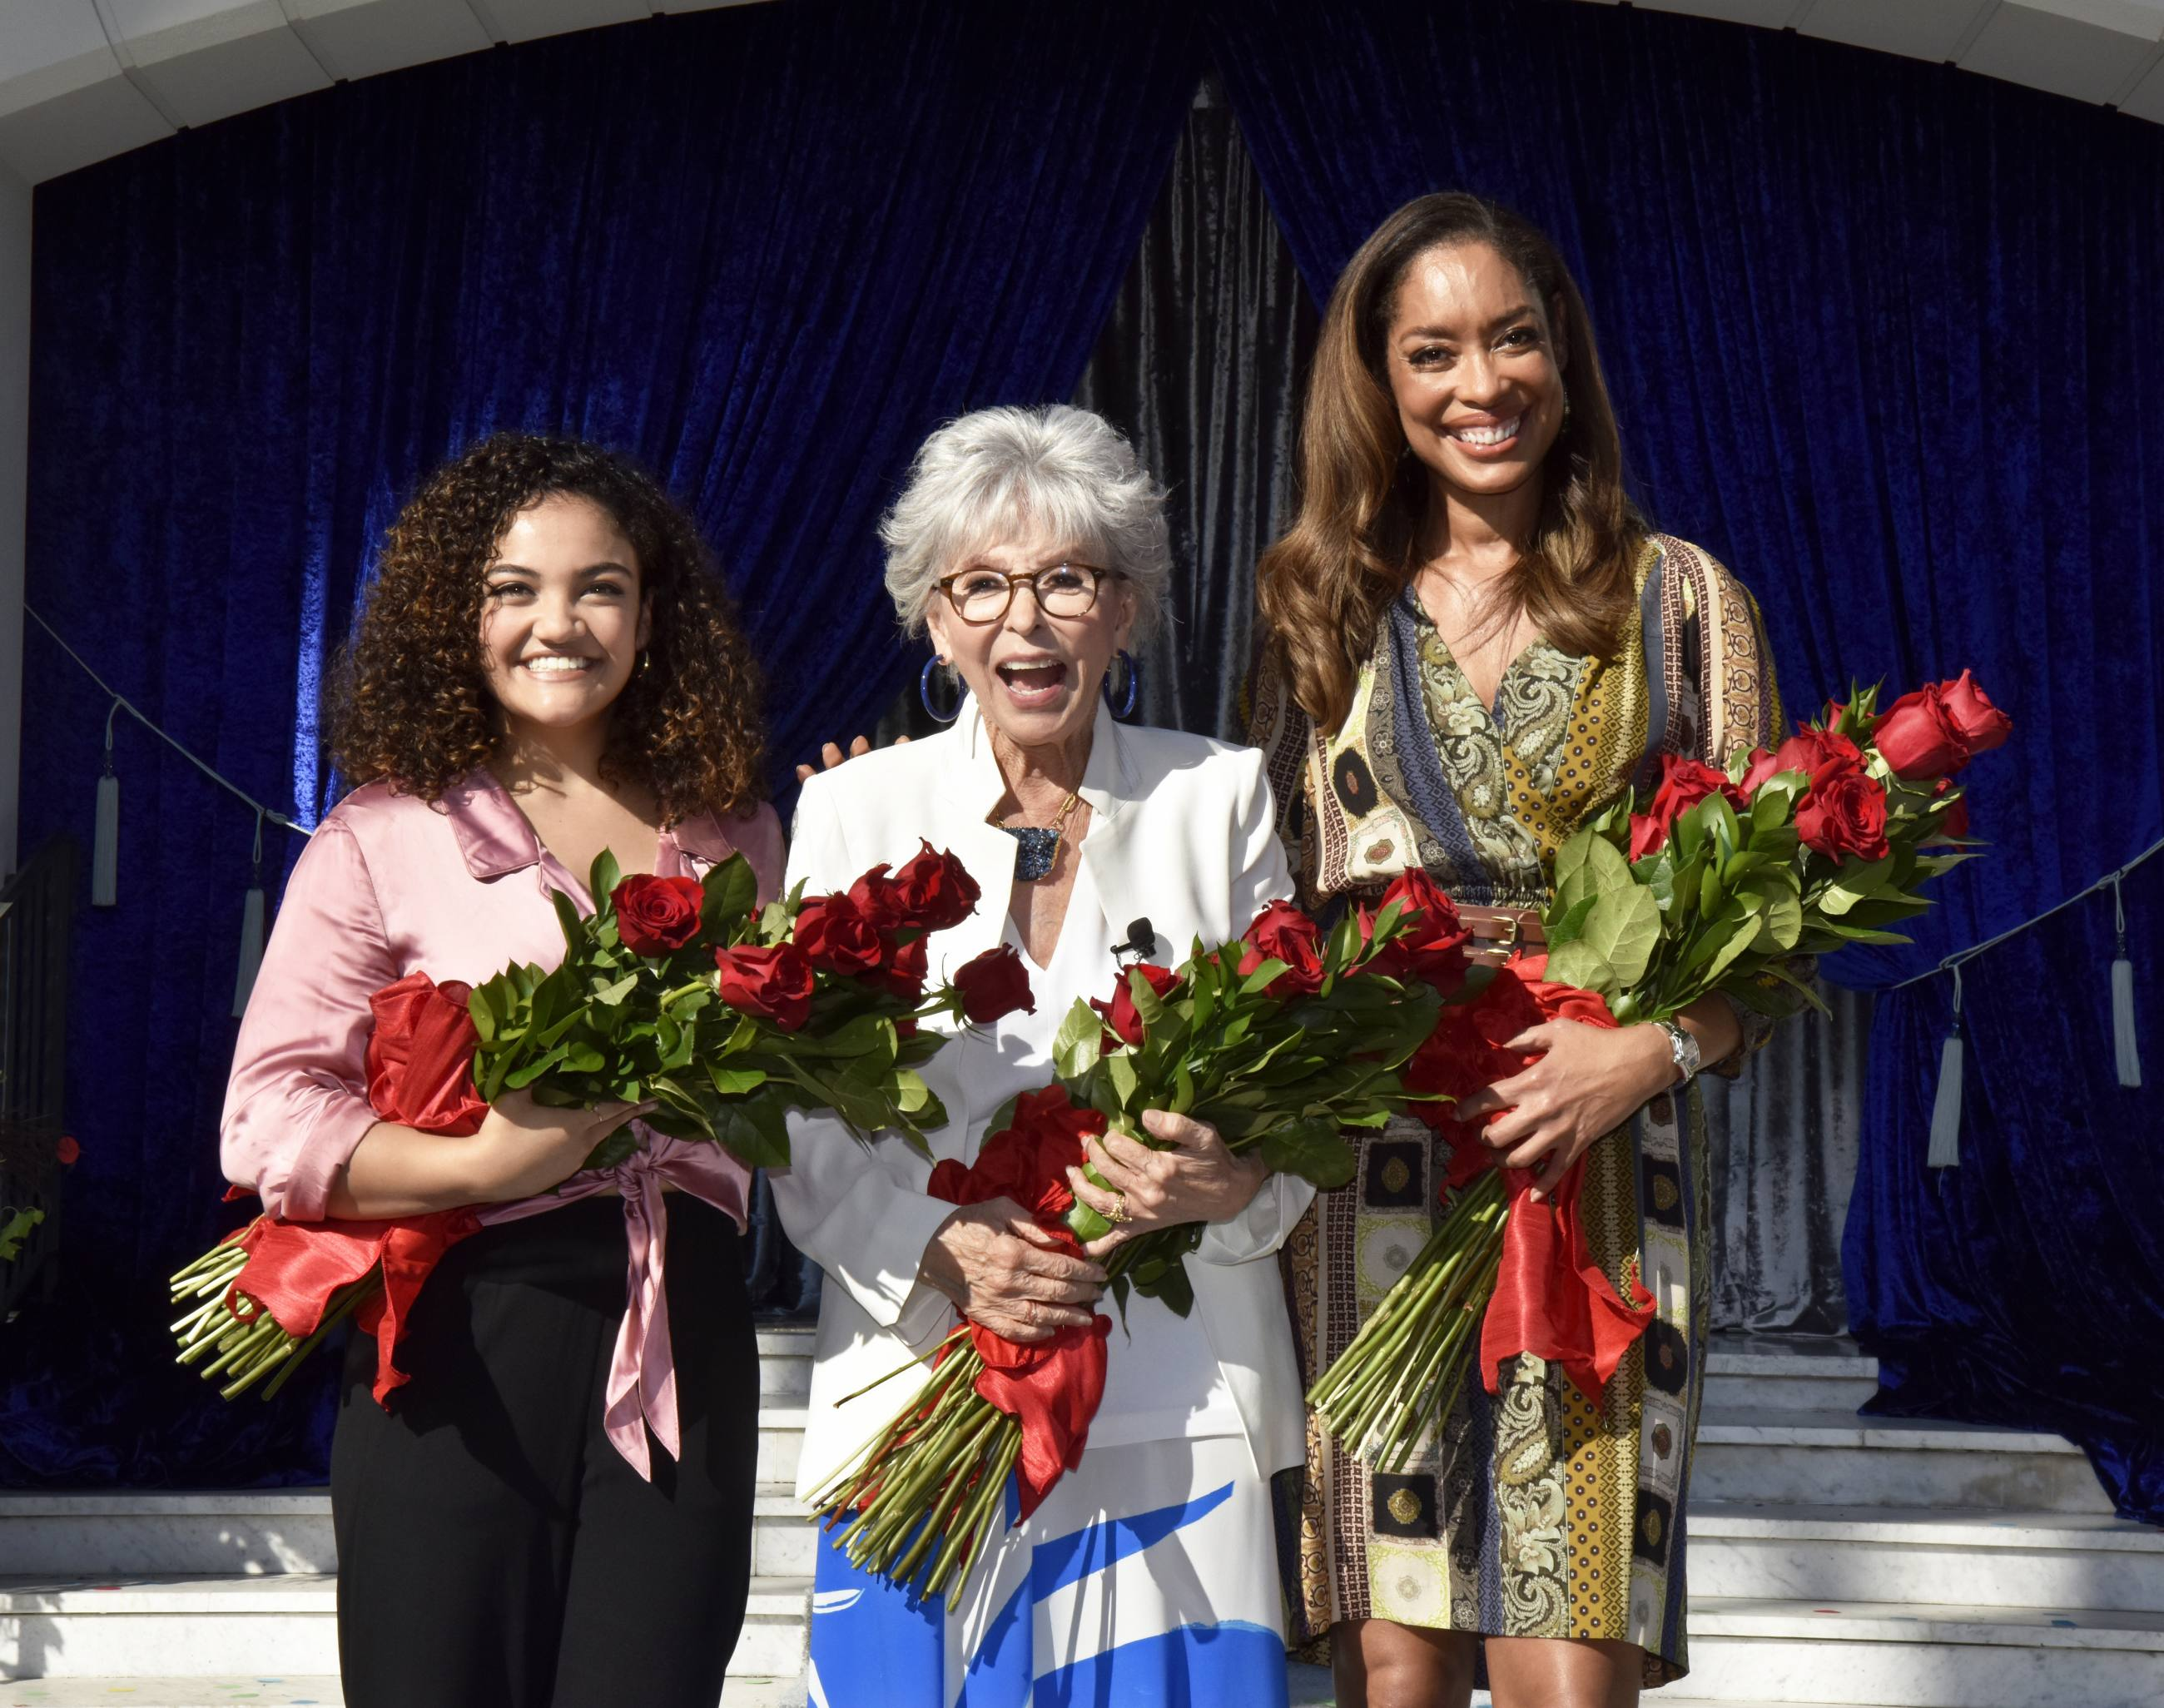 Tournament of Roses 2020 Grand Marshals Laurie Hernandez, Rita Moreno and Gina Torres